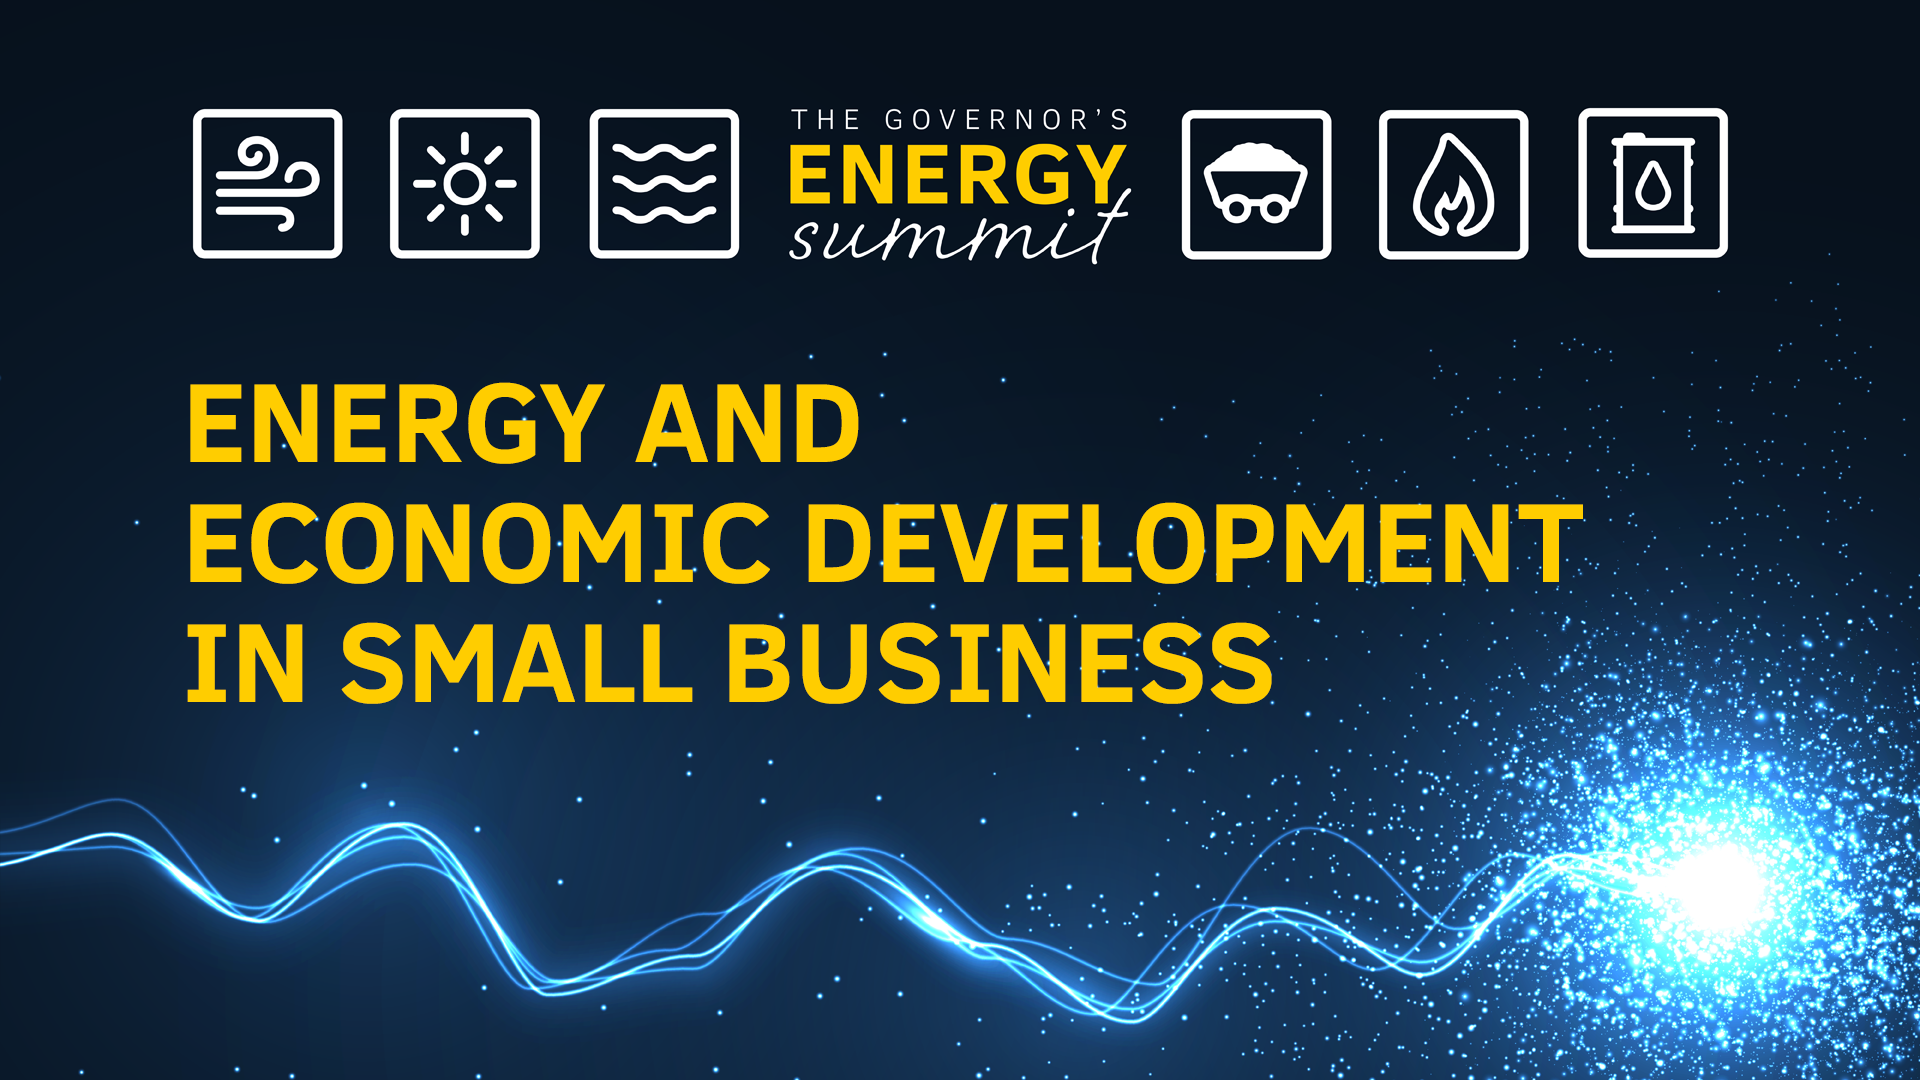 Energy and Economic Development in Small Business